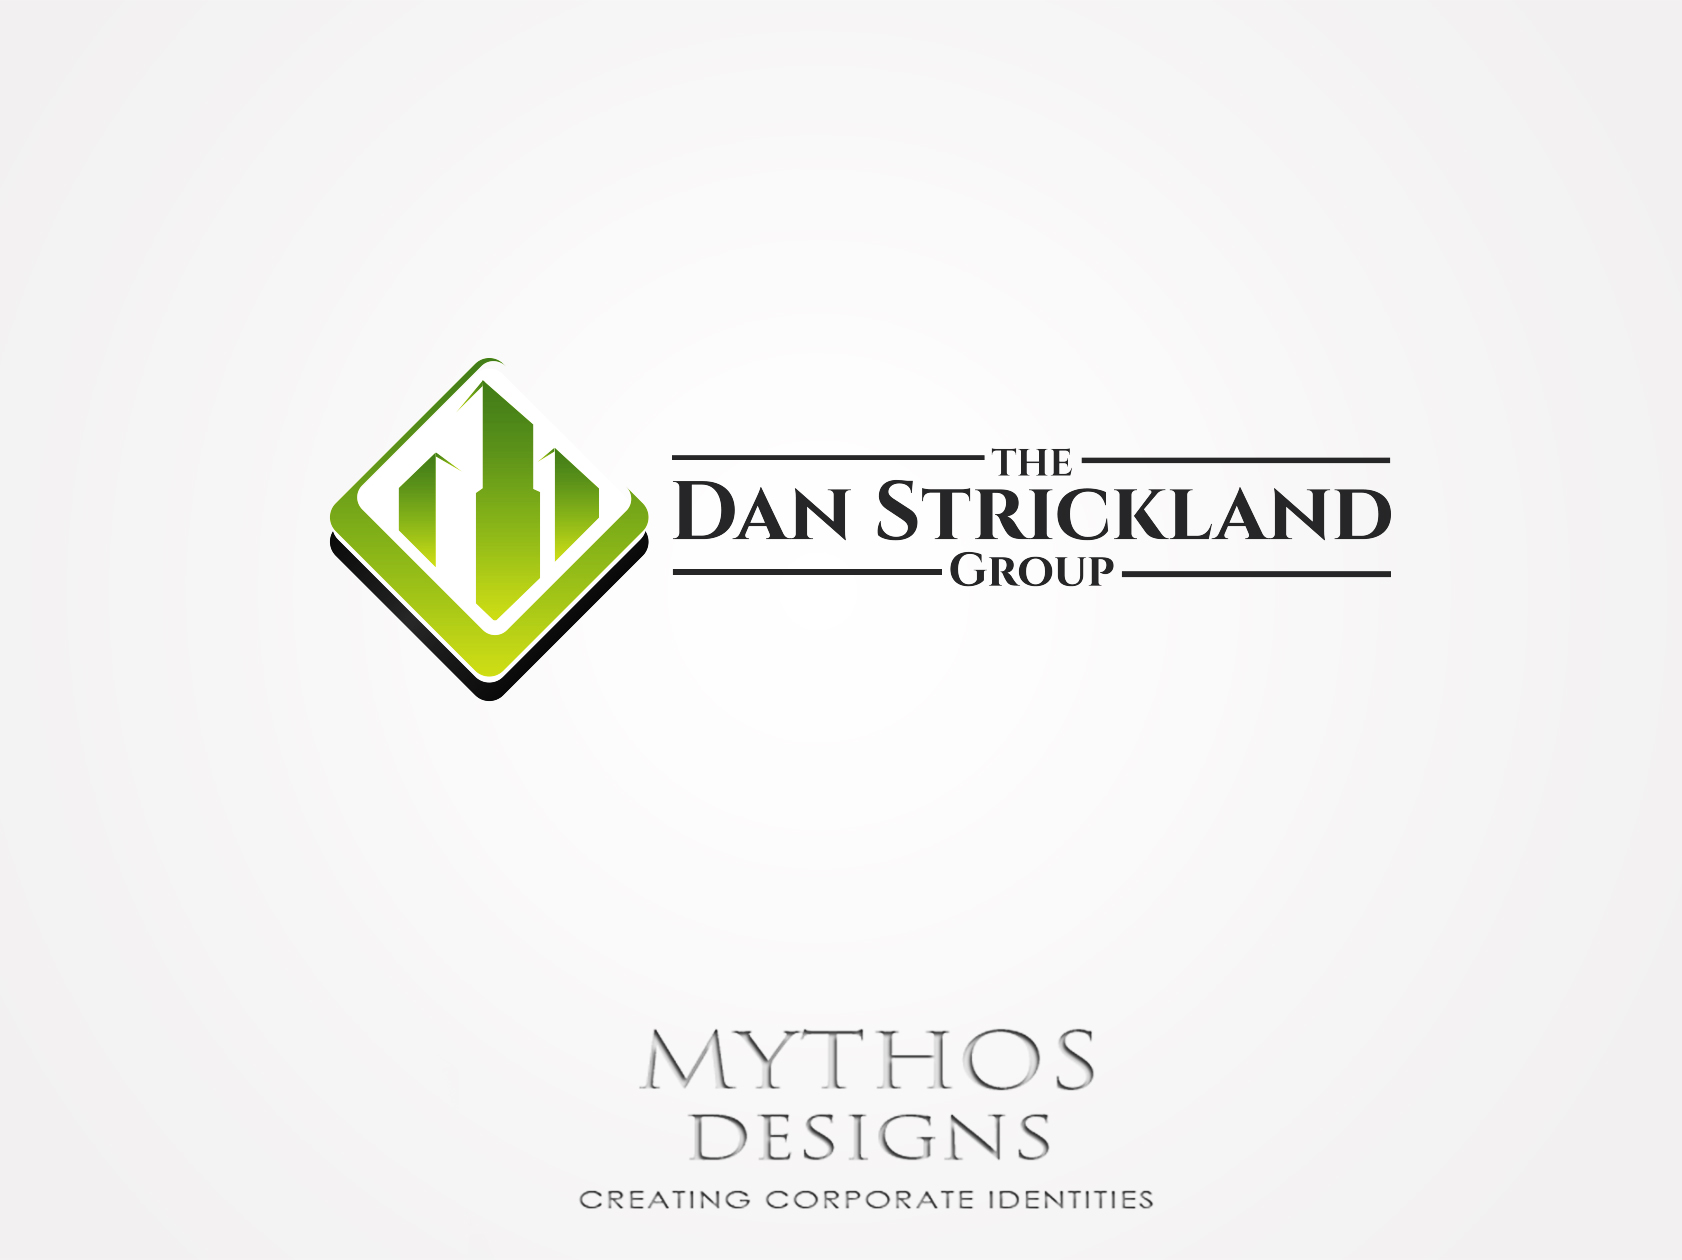 Logo Design by Mythos Designs - Entry No. 240 in the Logo Design Contest Creative Logo Design for The Dan Strickland Group.